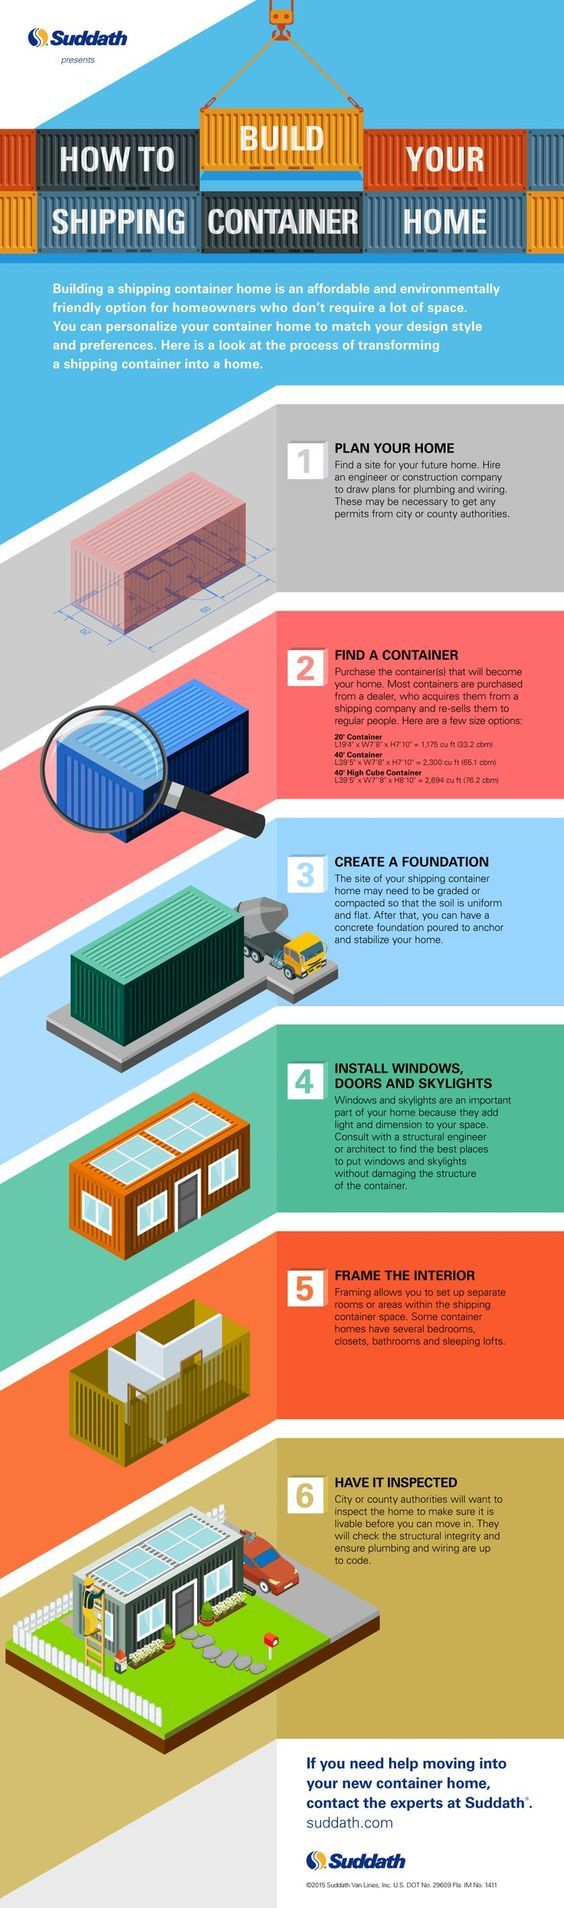 Shipping container homes living for the future earth911 com - How To Build Your Own Shipping Container Home